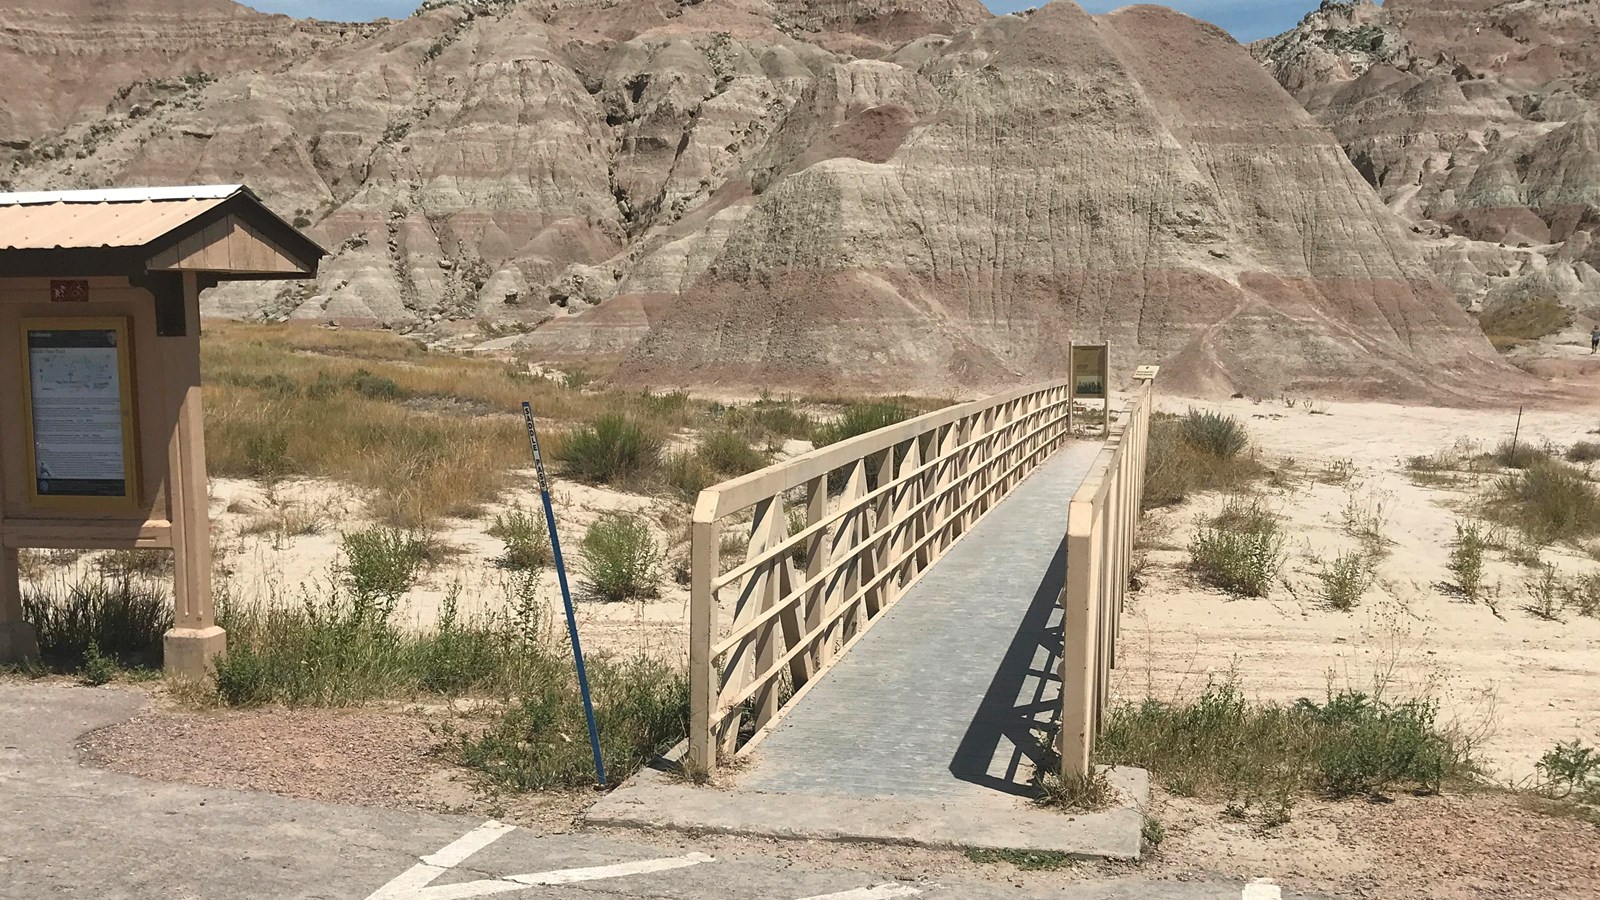 Information board sits alongside boardwalk which extends into badlands formations under blue sky.